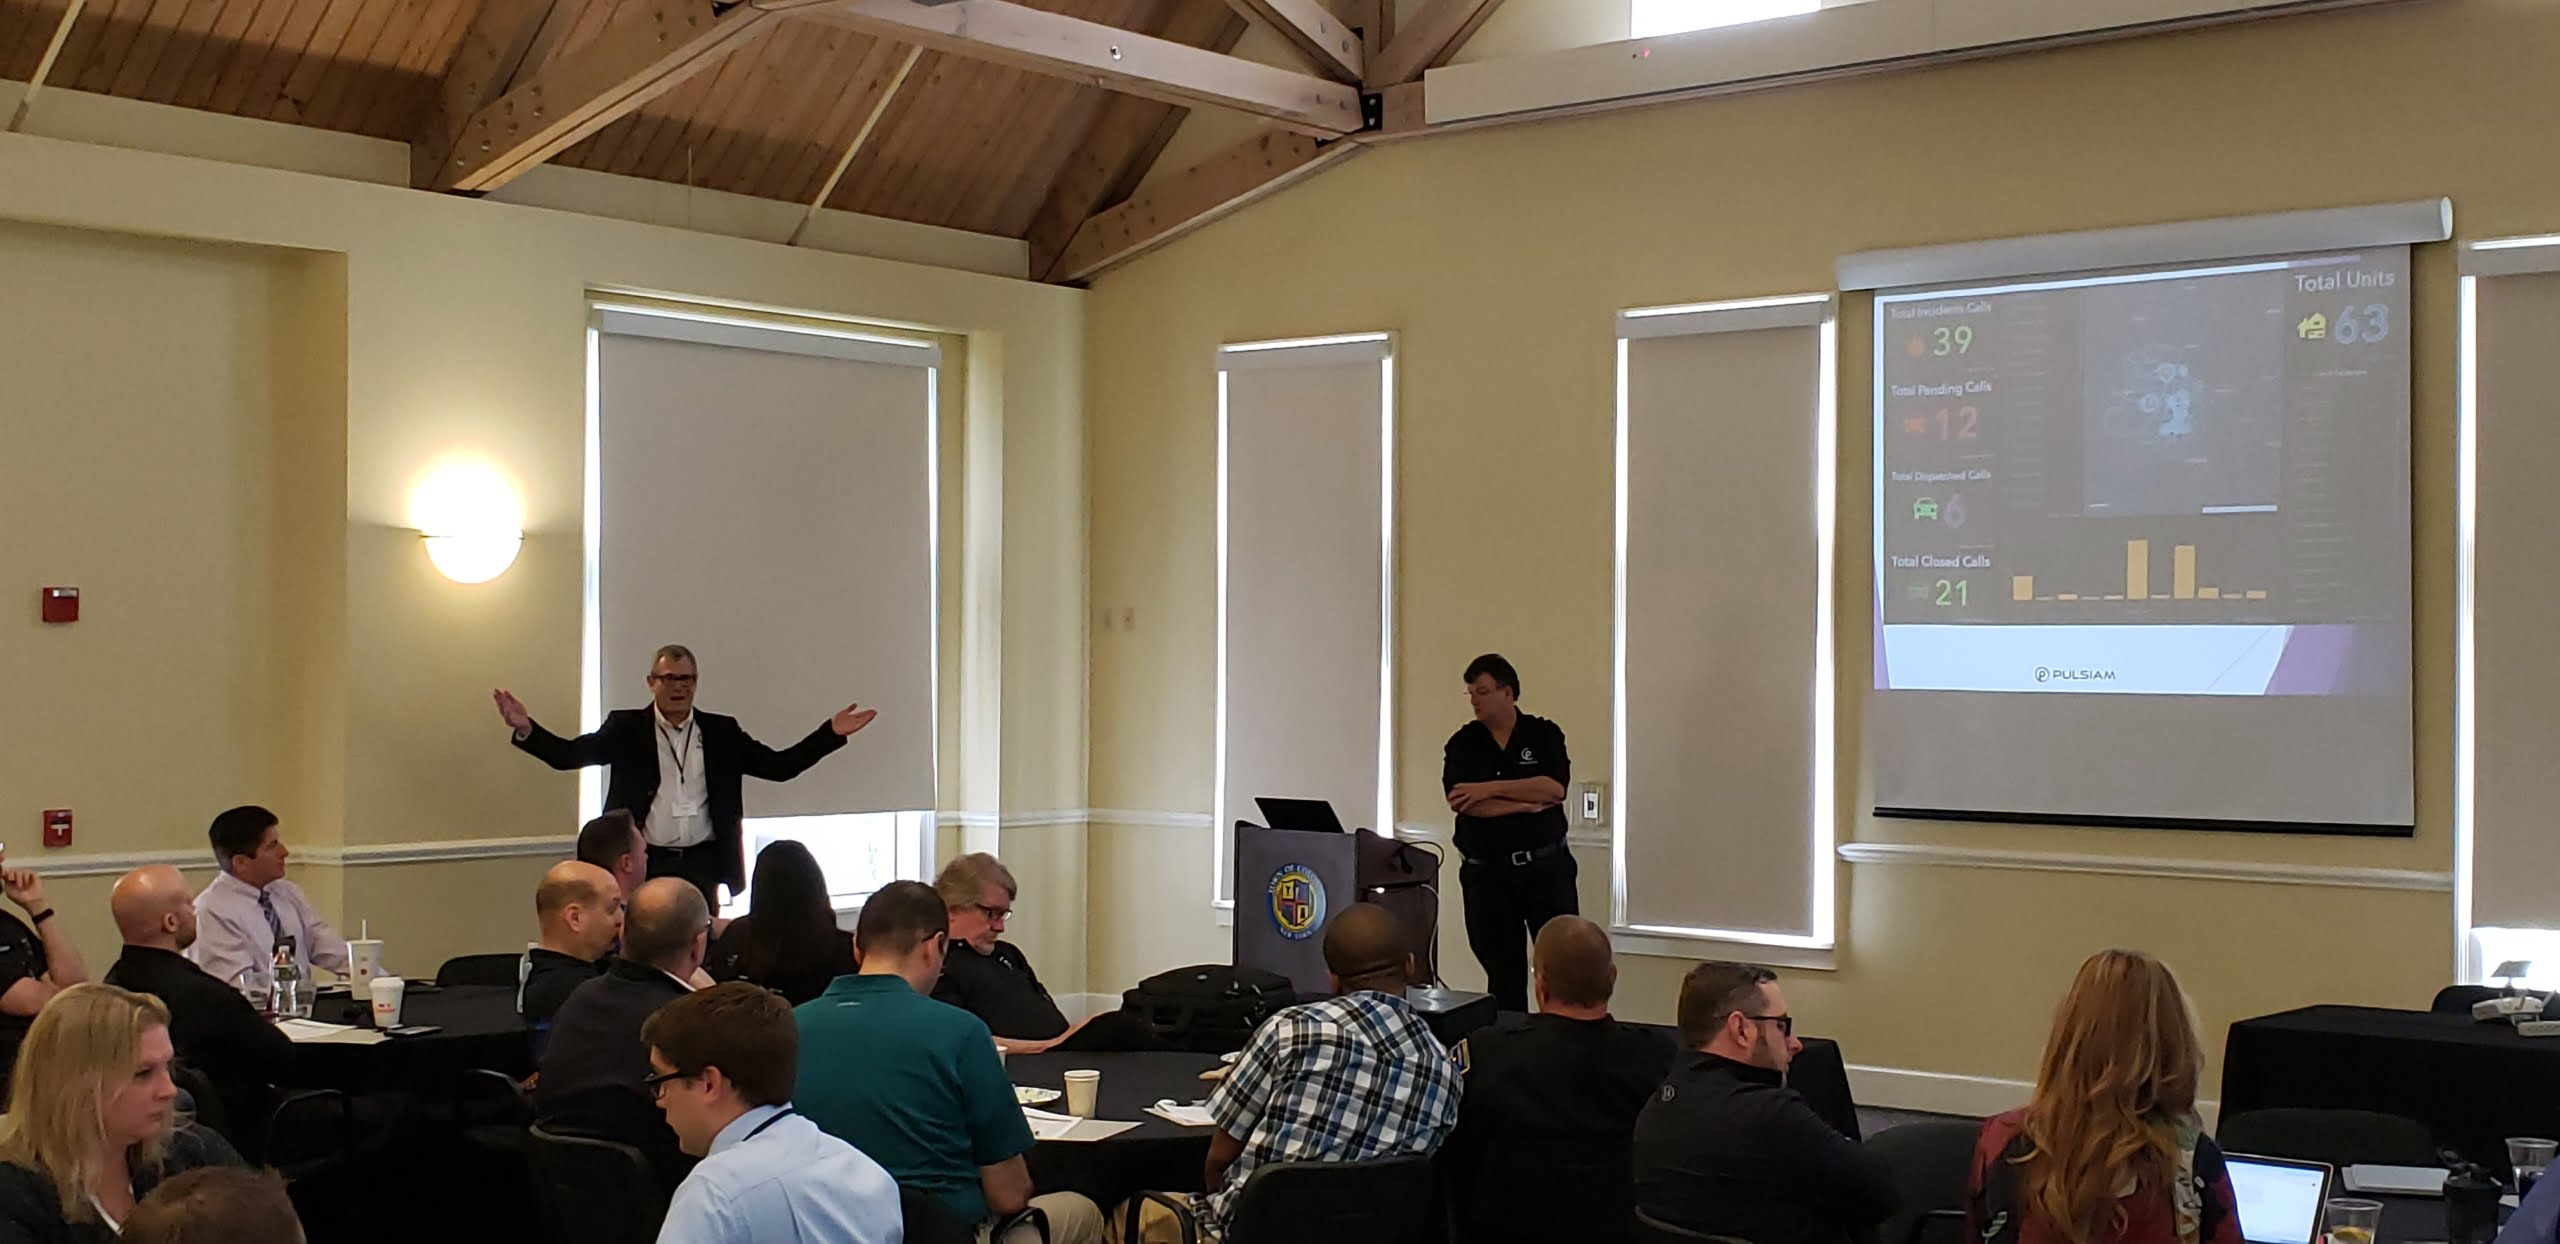 Pulsiam Holds Annual User Conference in Colonie, New York